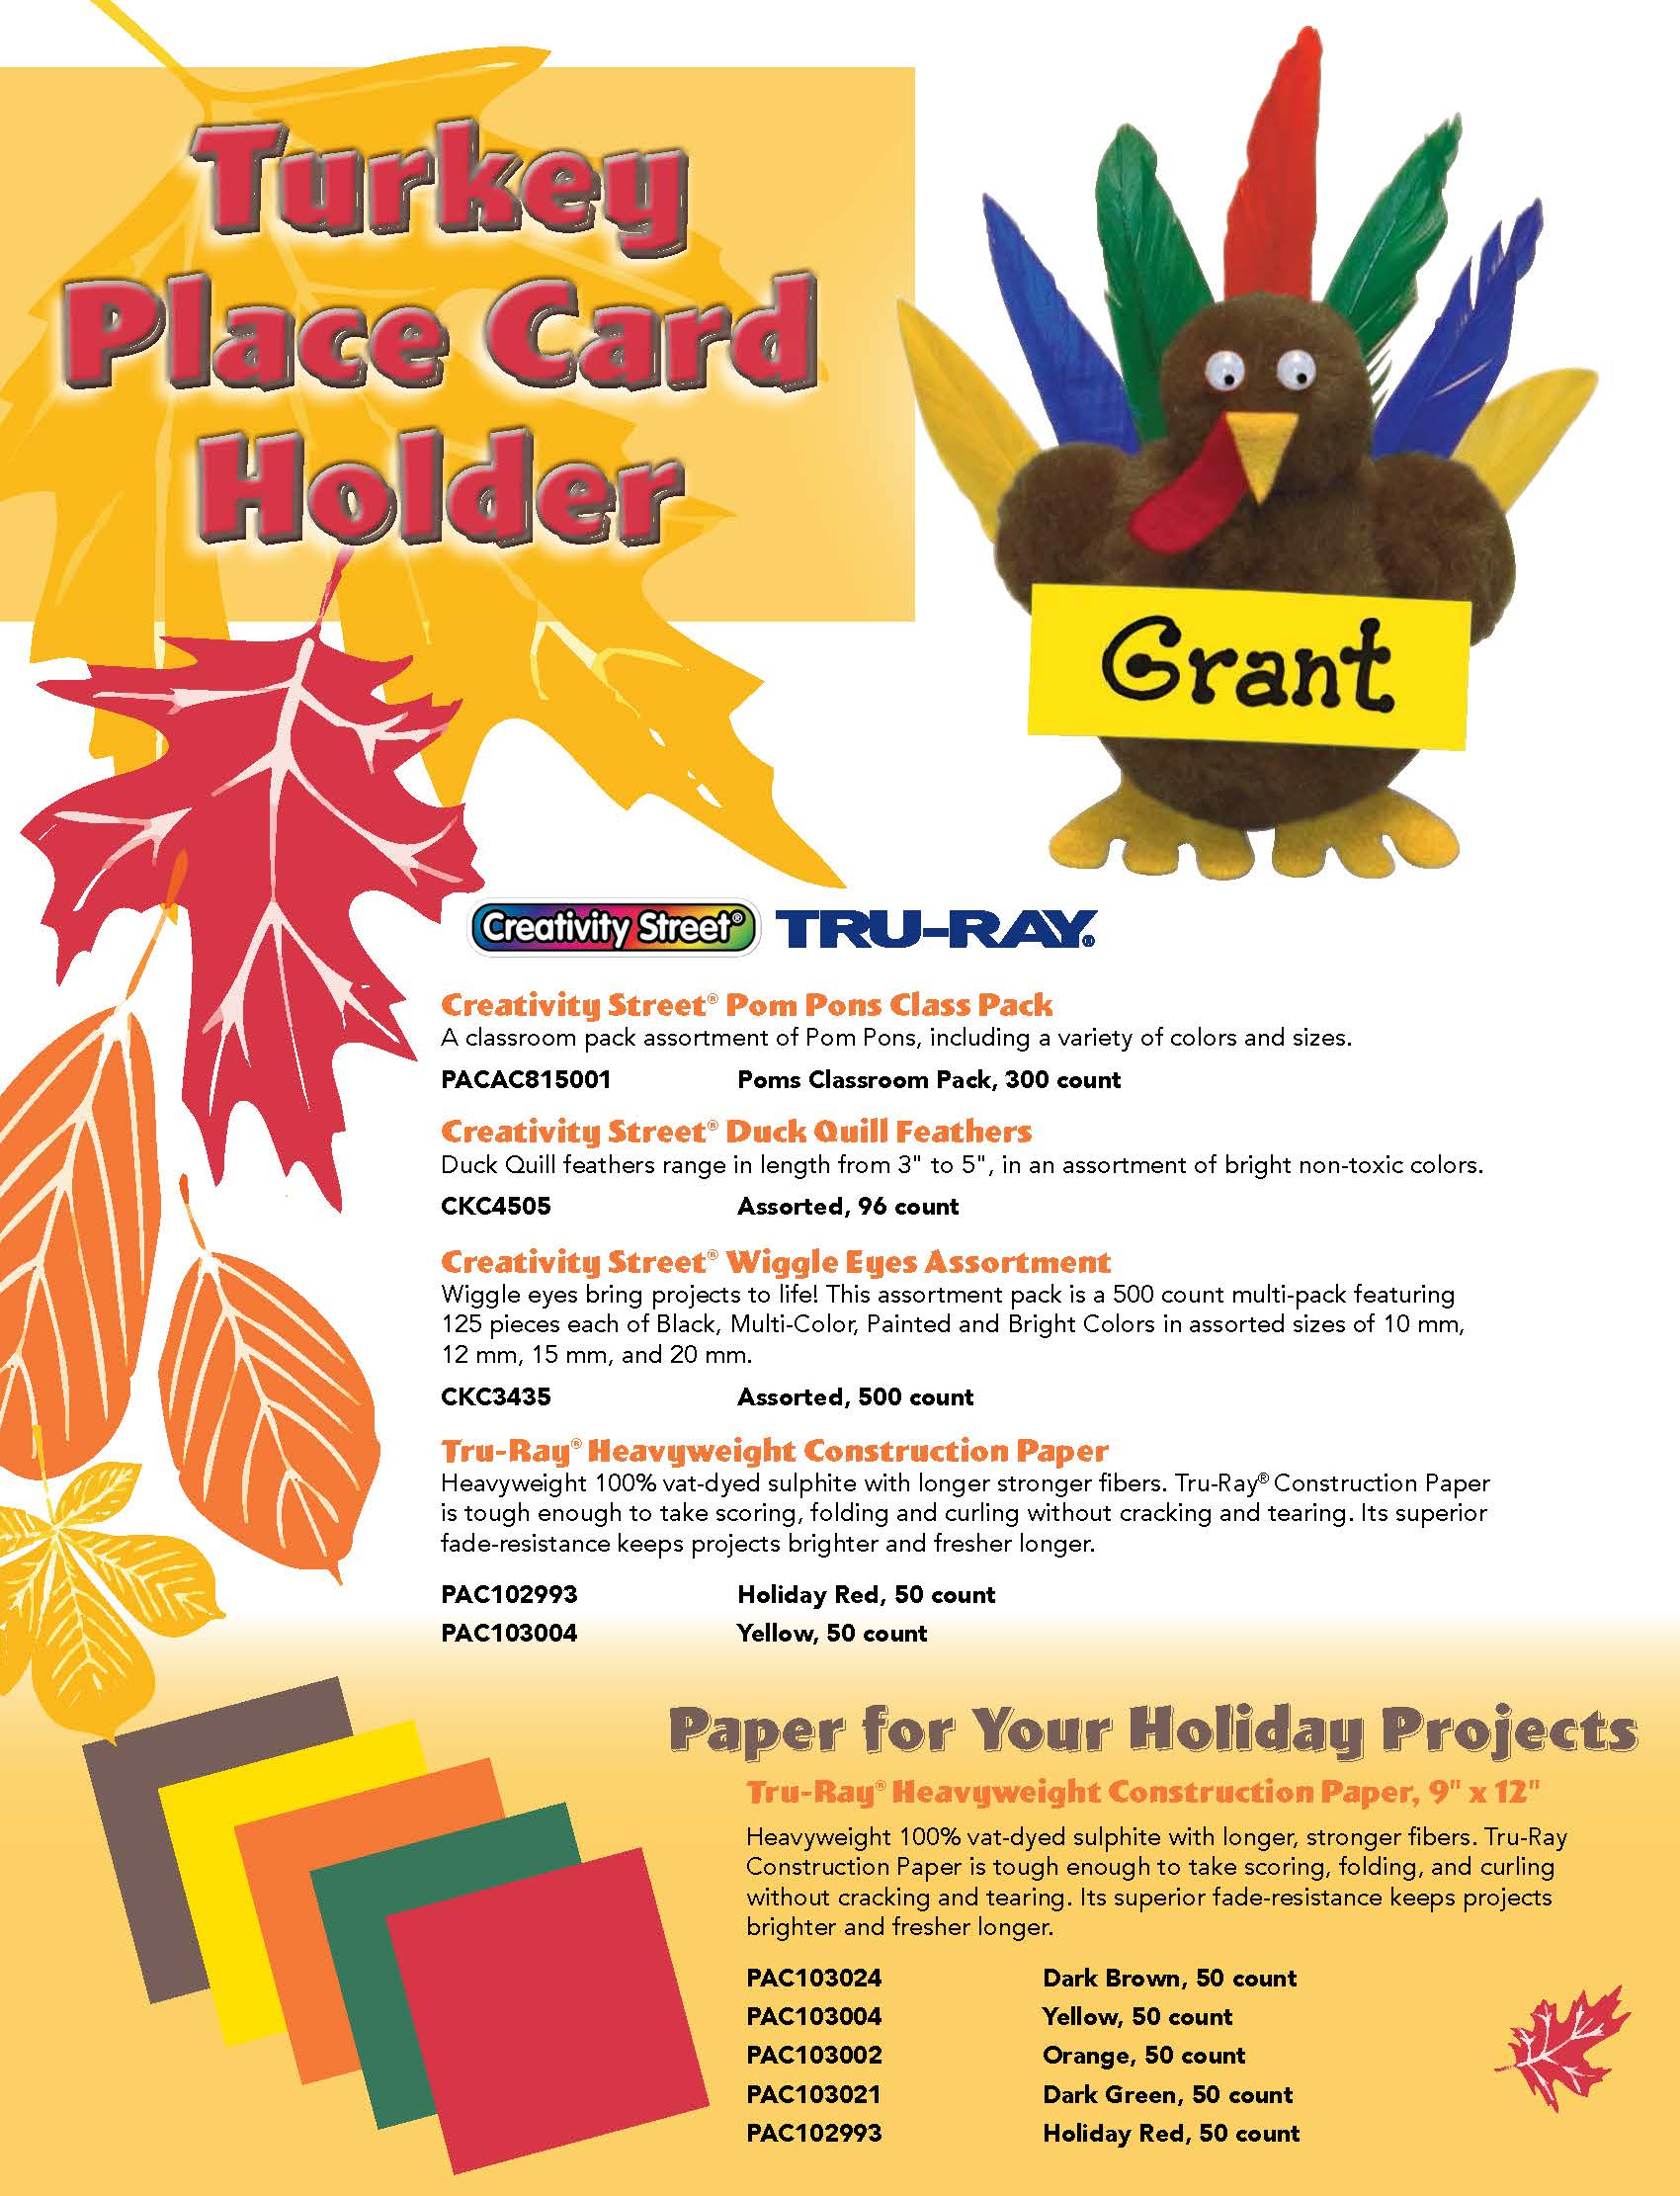 SP_Richards_Thanksgiving_Flyer_10-17-2017 (6)_Page_1